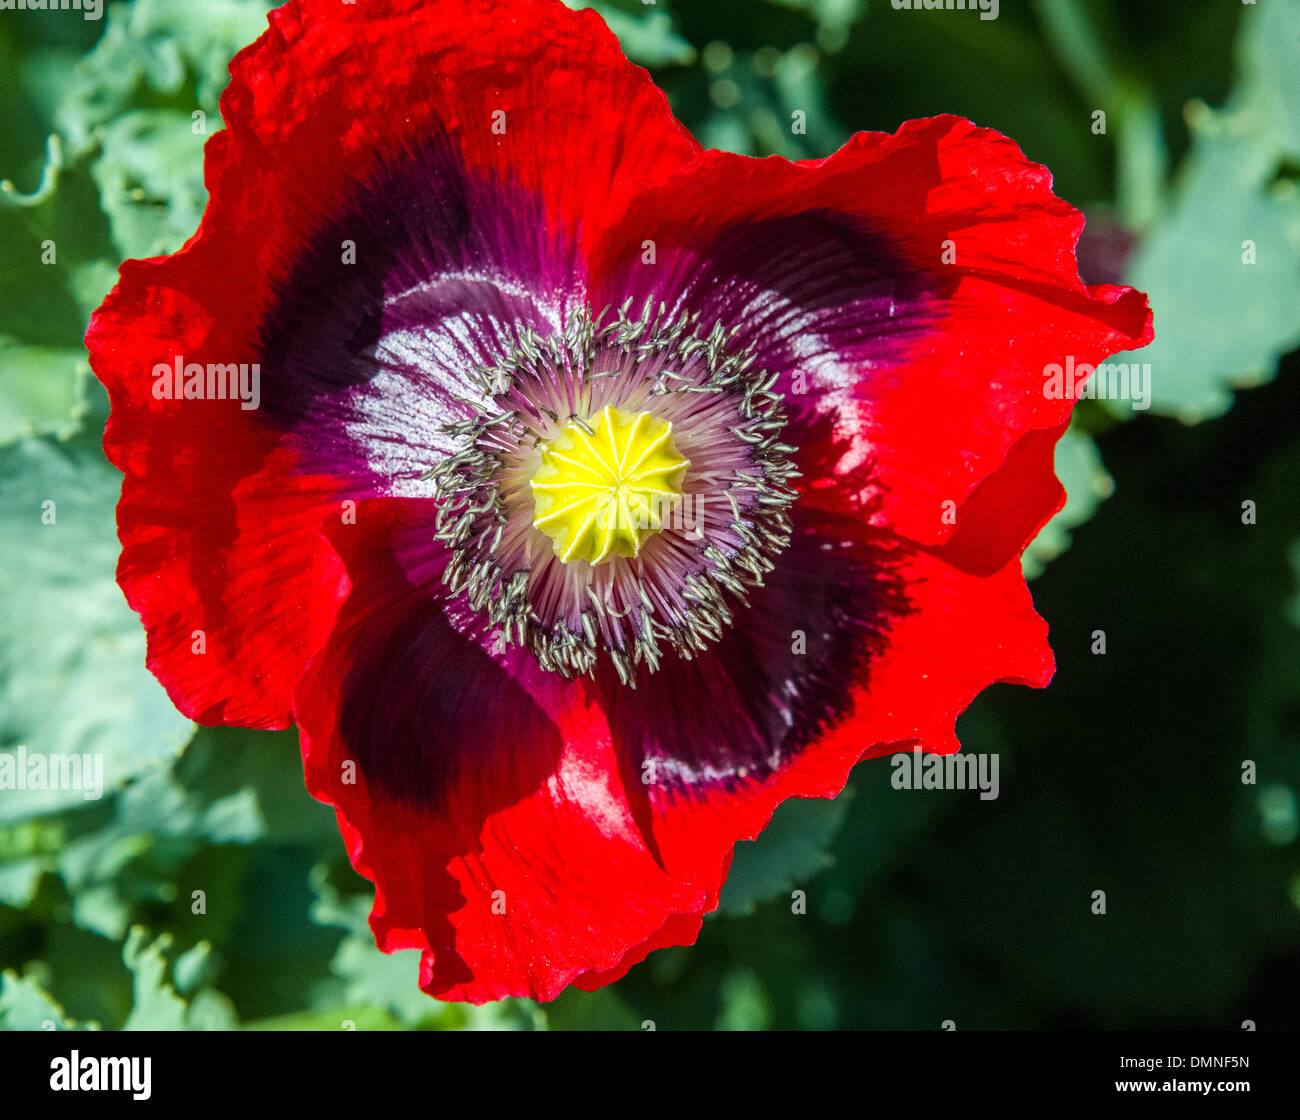 Red Poppy Flowers And Poppy Pods In Natural Growing Garden Outdoor